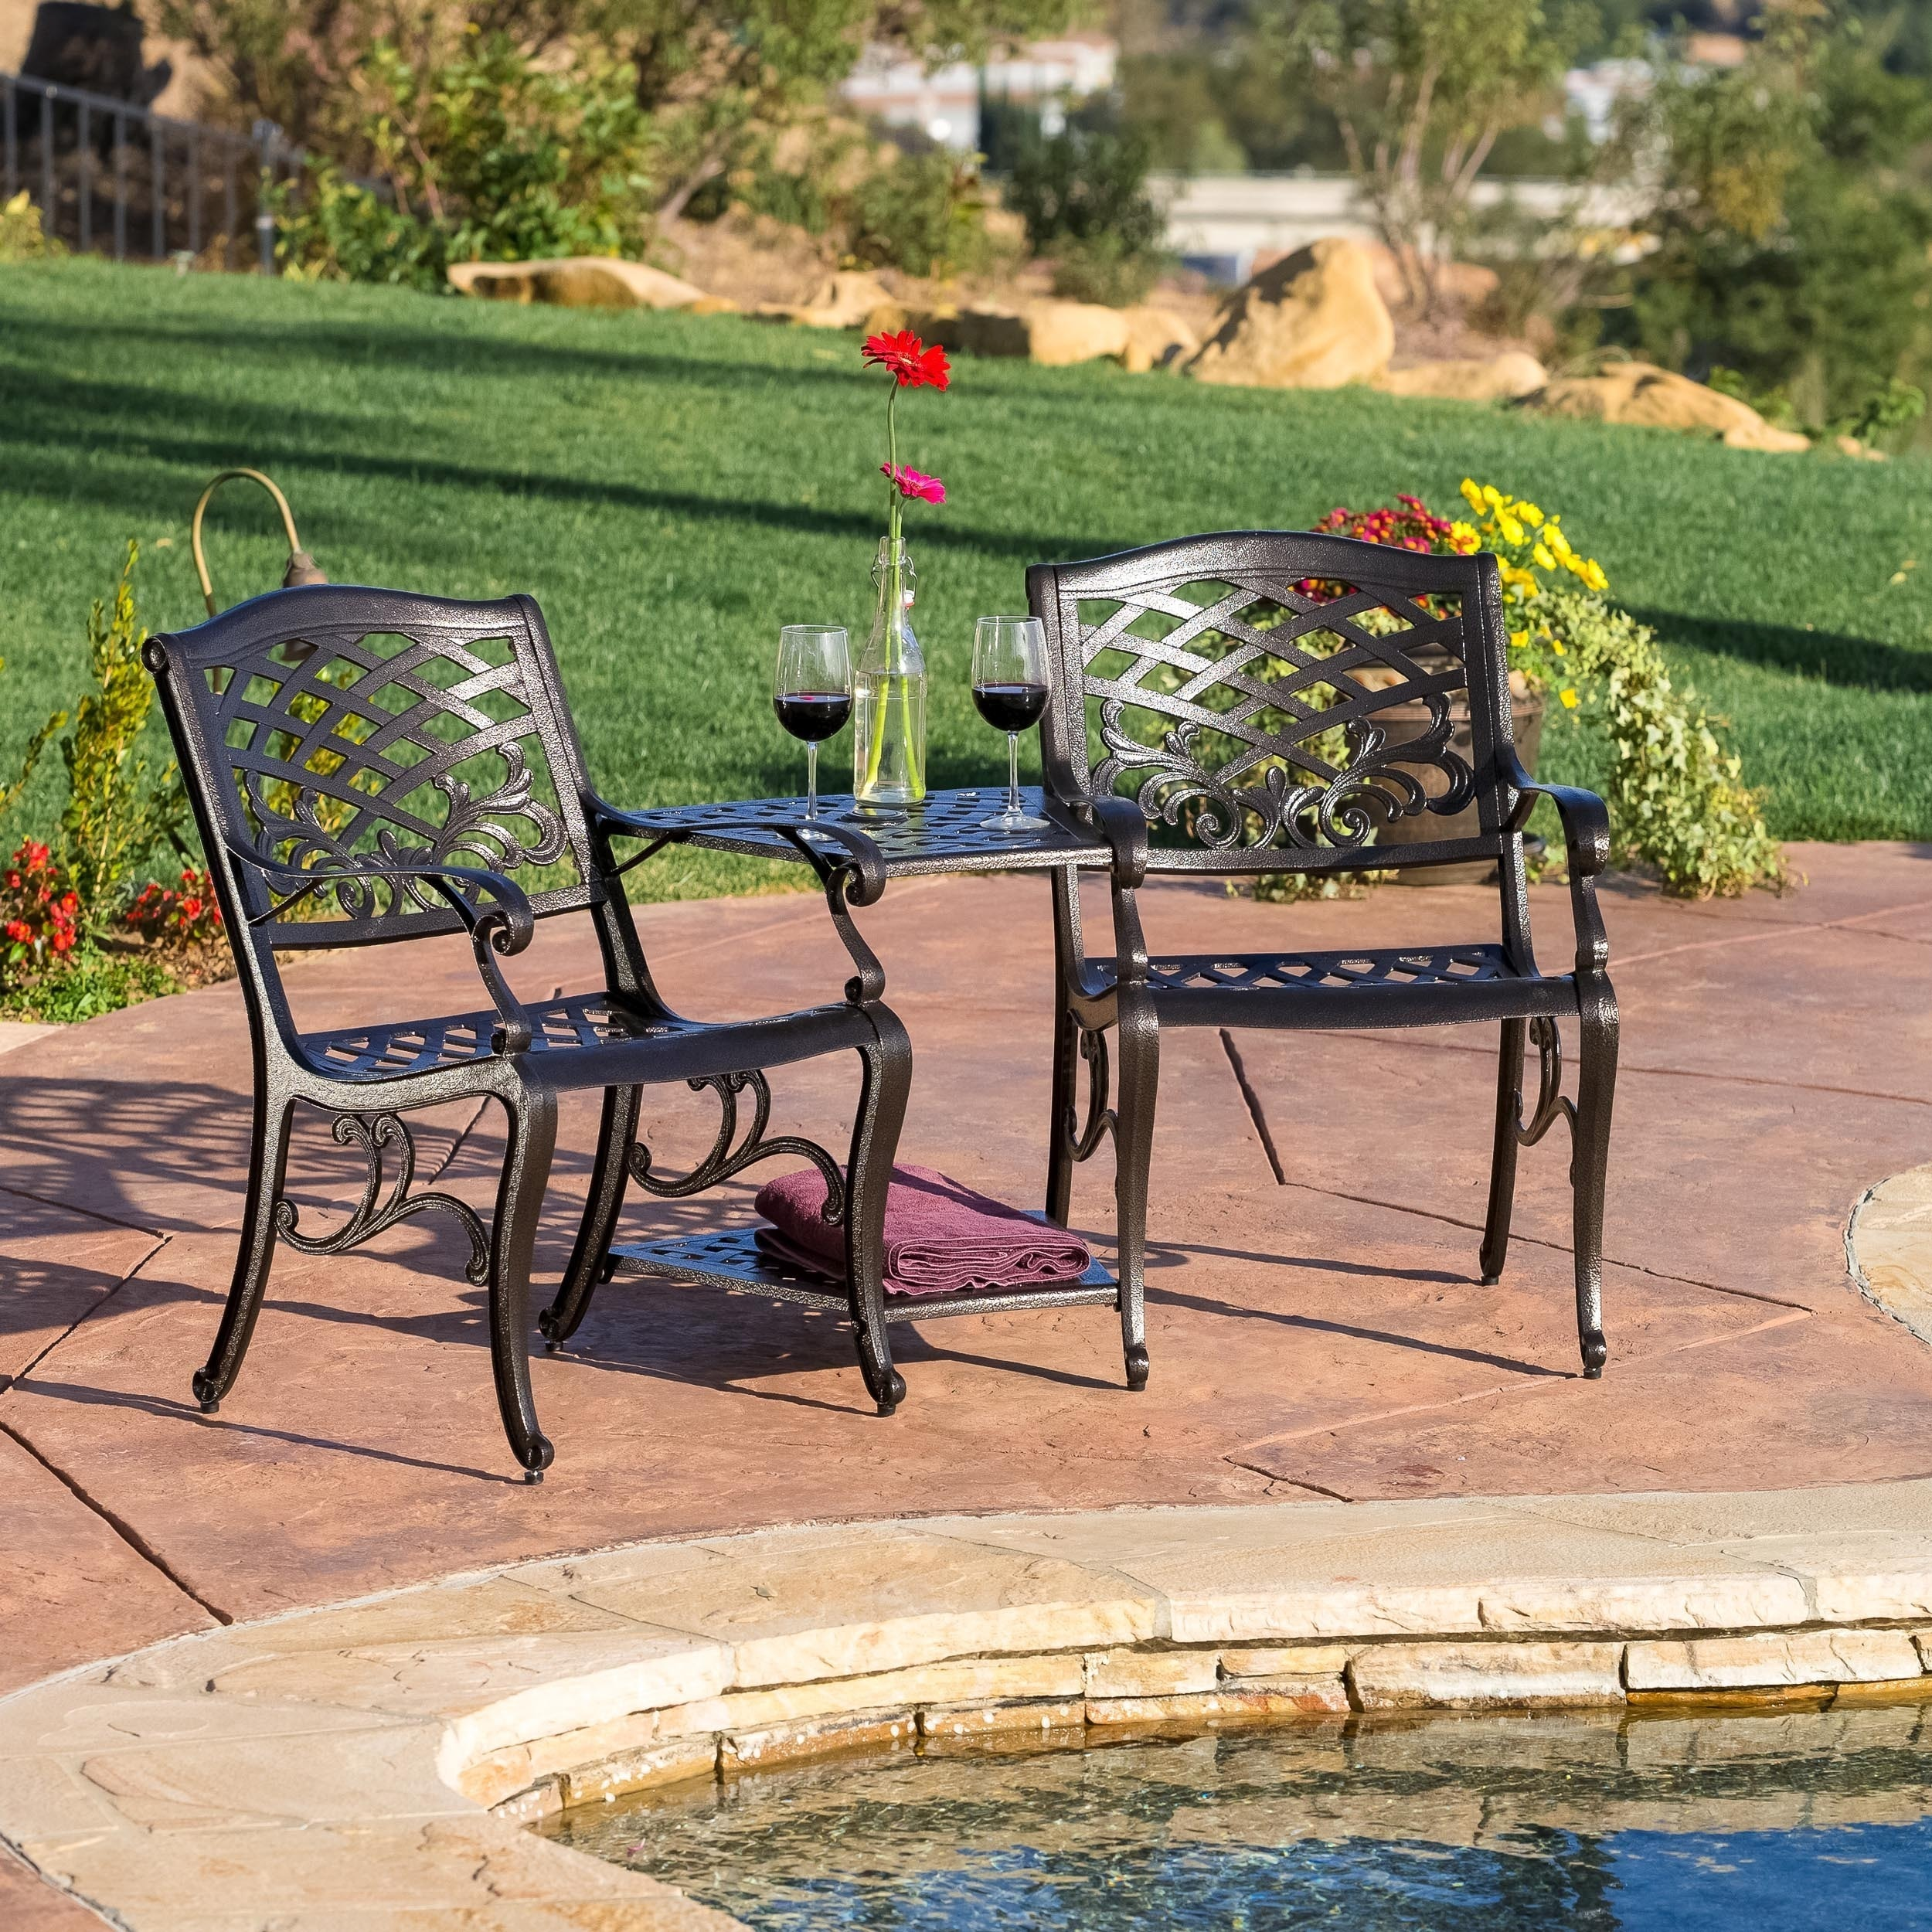 Christopher Knight Home Garden Patio Clearance Liquidation Shop Our Best Home Goods Deals Online At Overstock - Clearance On Garden Furniture